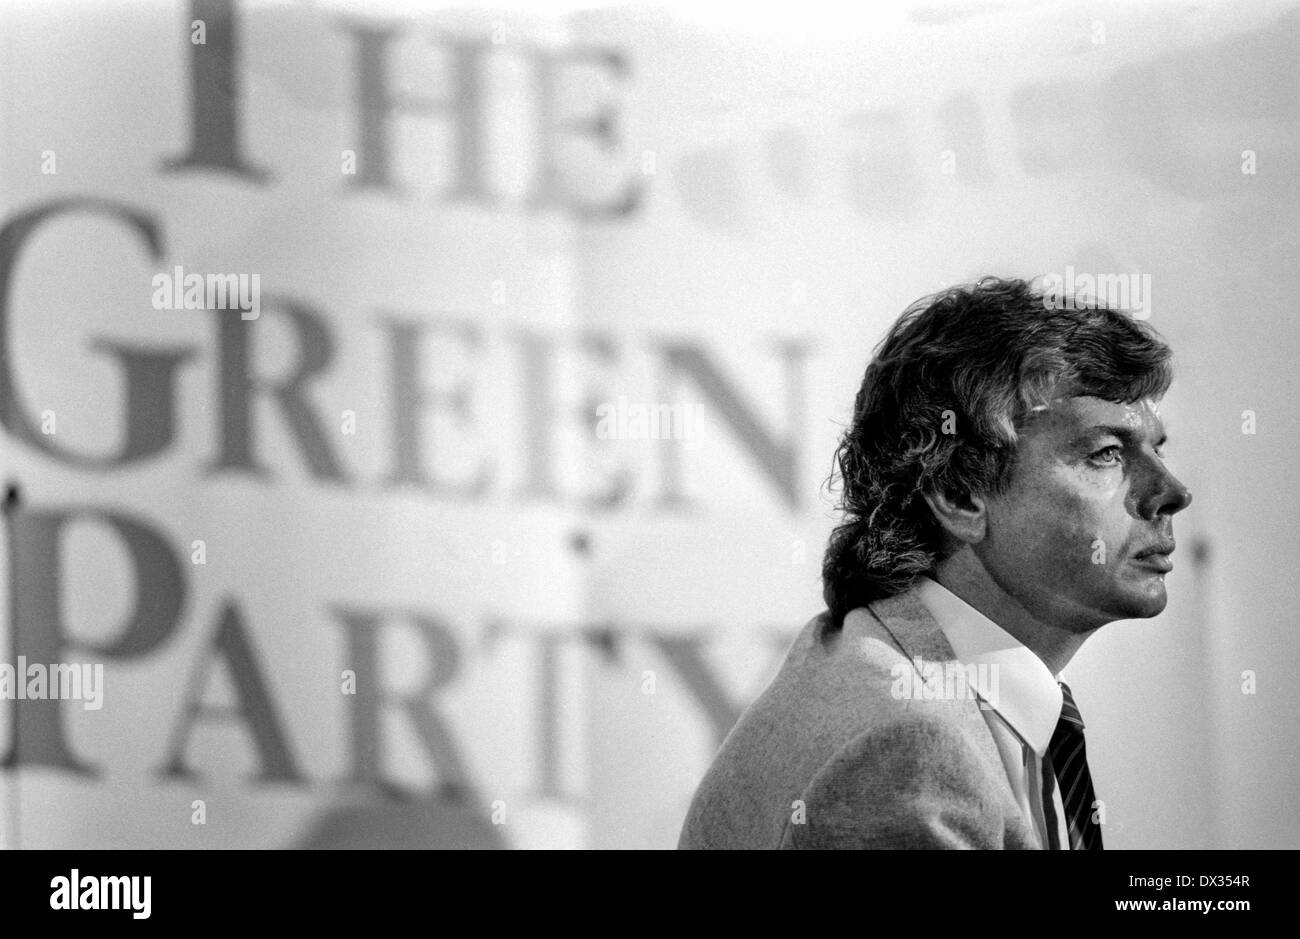 David Icke at a Green Party conference at the Wolverhampton Civic Hall, England, in 1989. - Stock Image